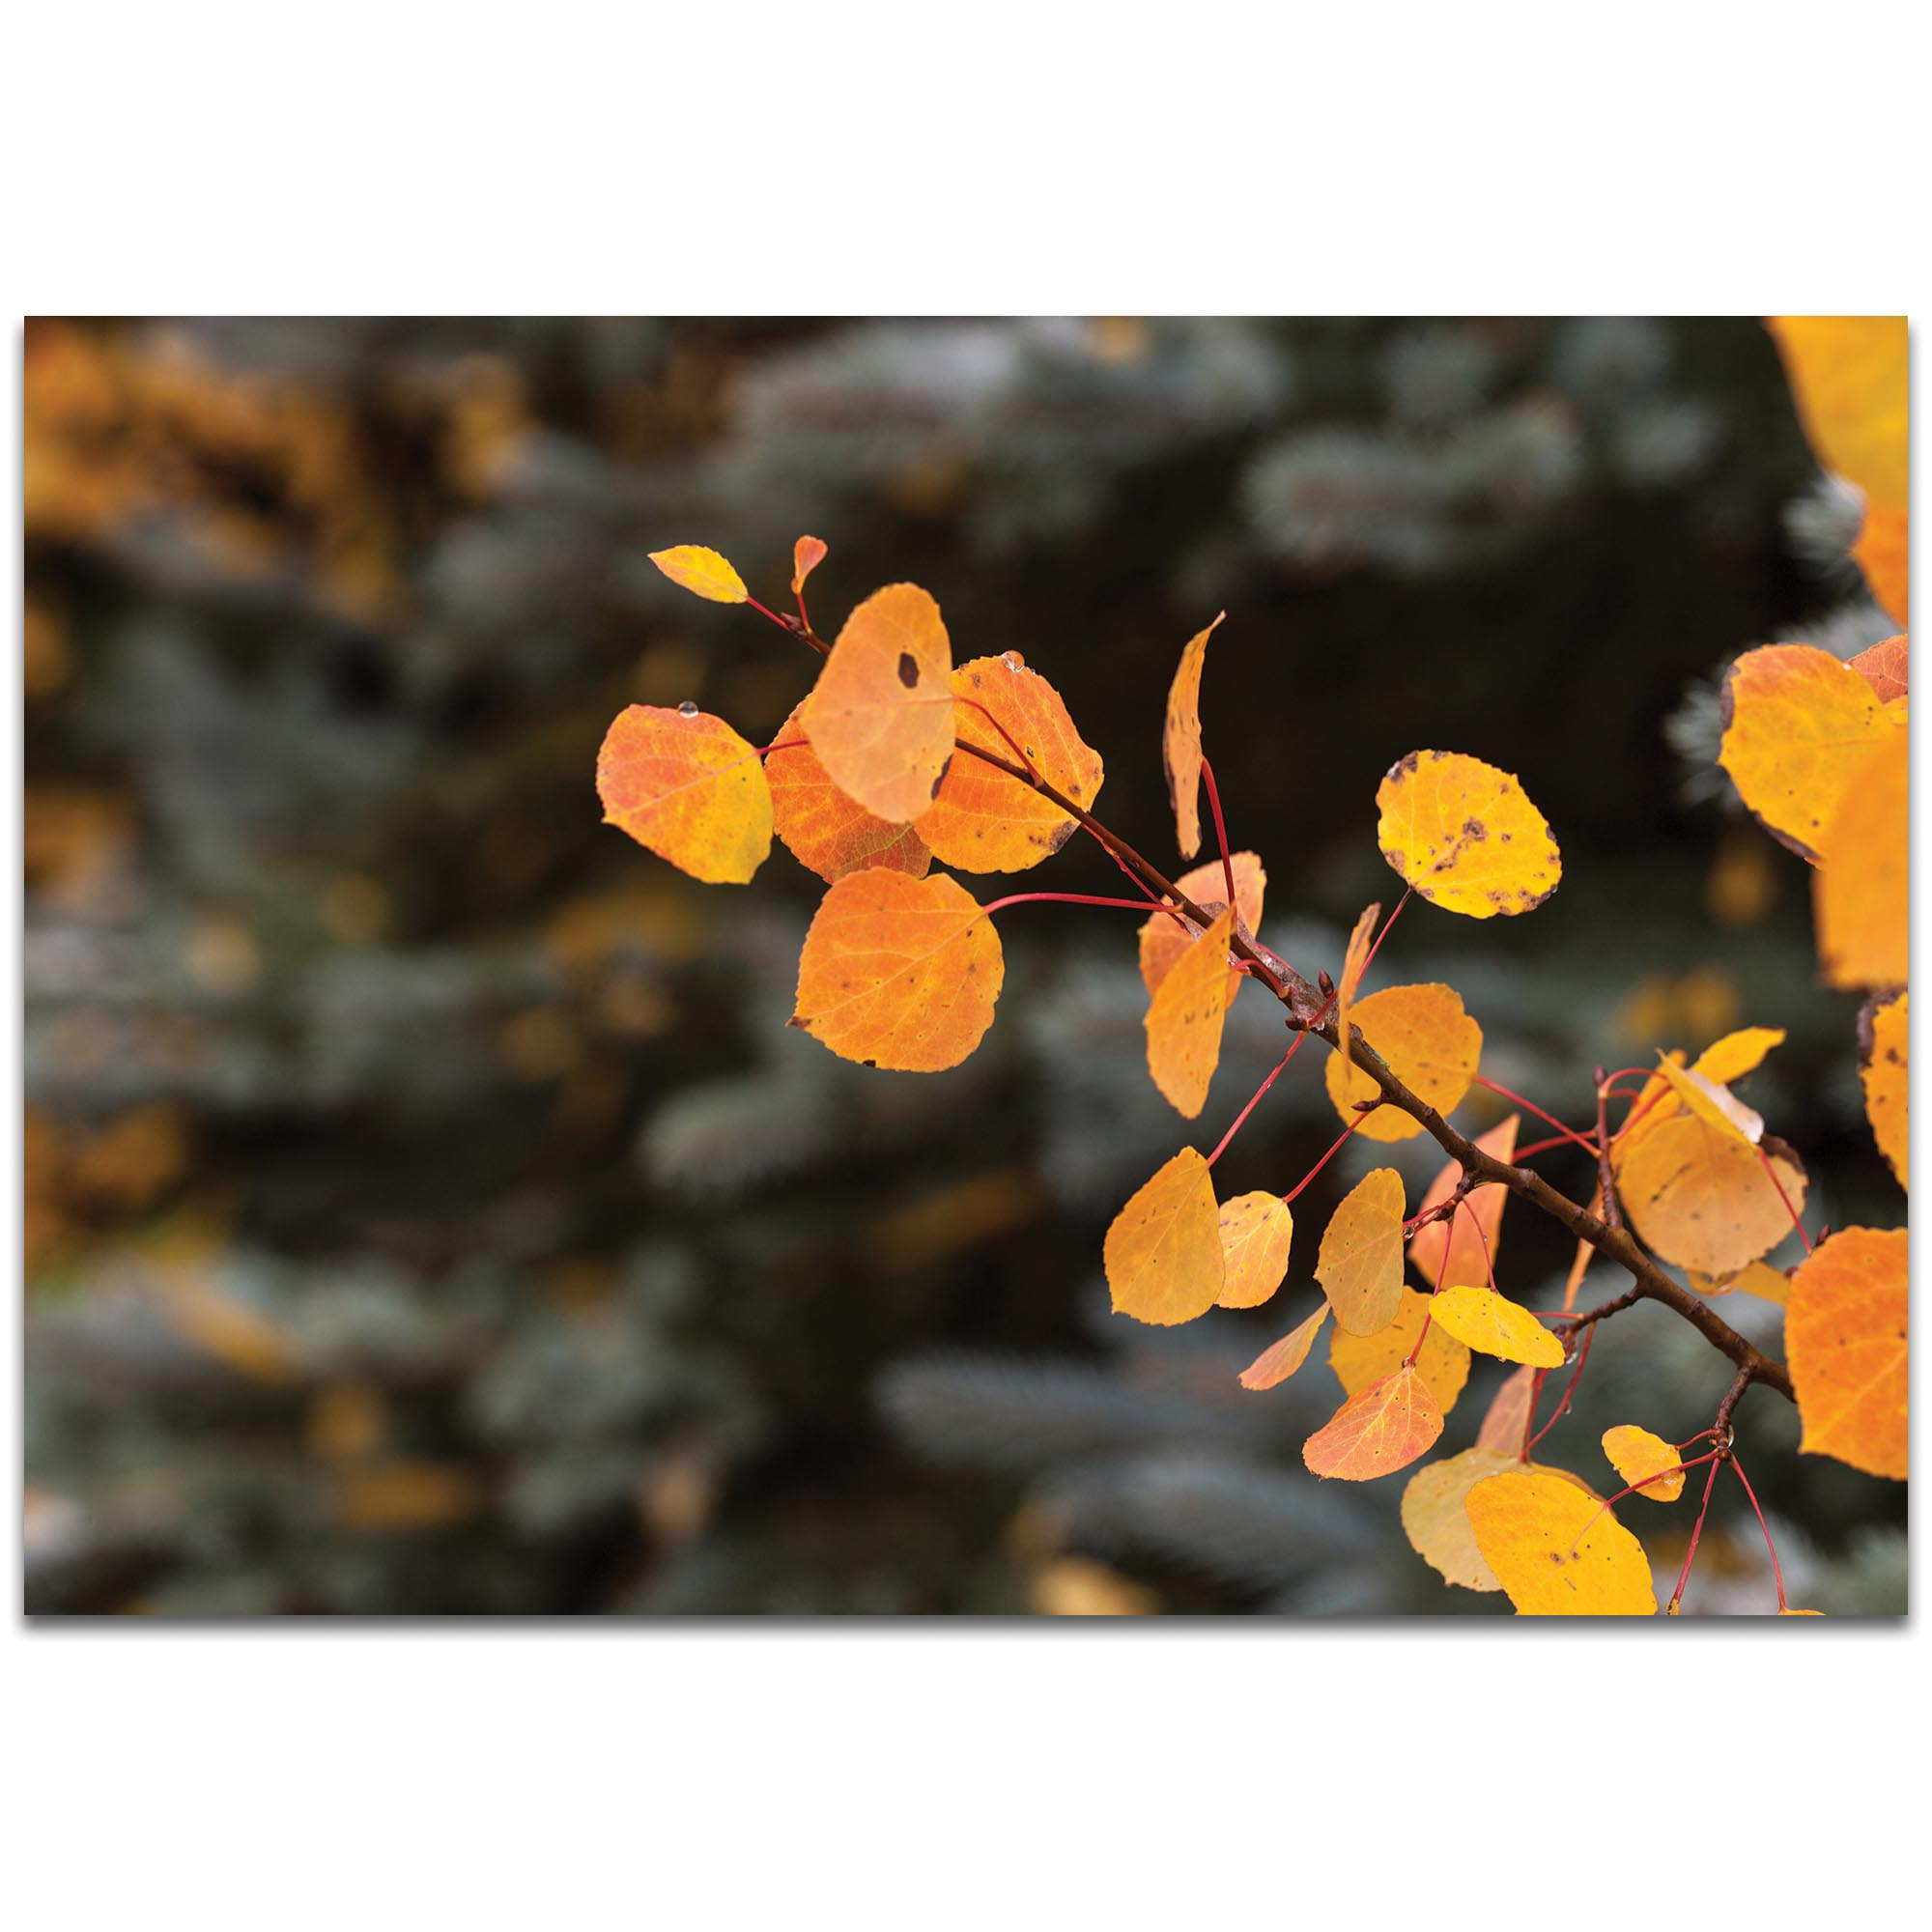 Nature Photography 'Autumn Branch' - Autumn Leaves Art on Metal or Plexiglass